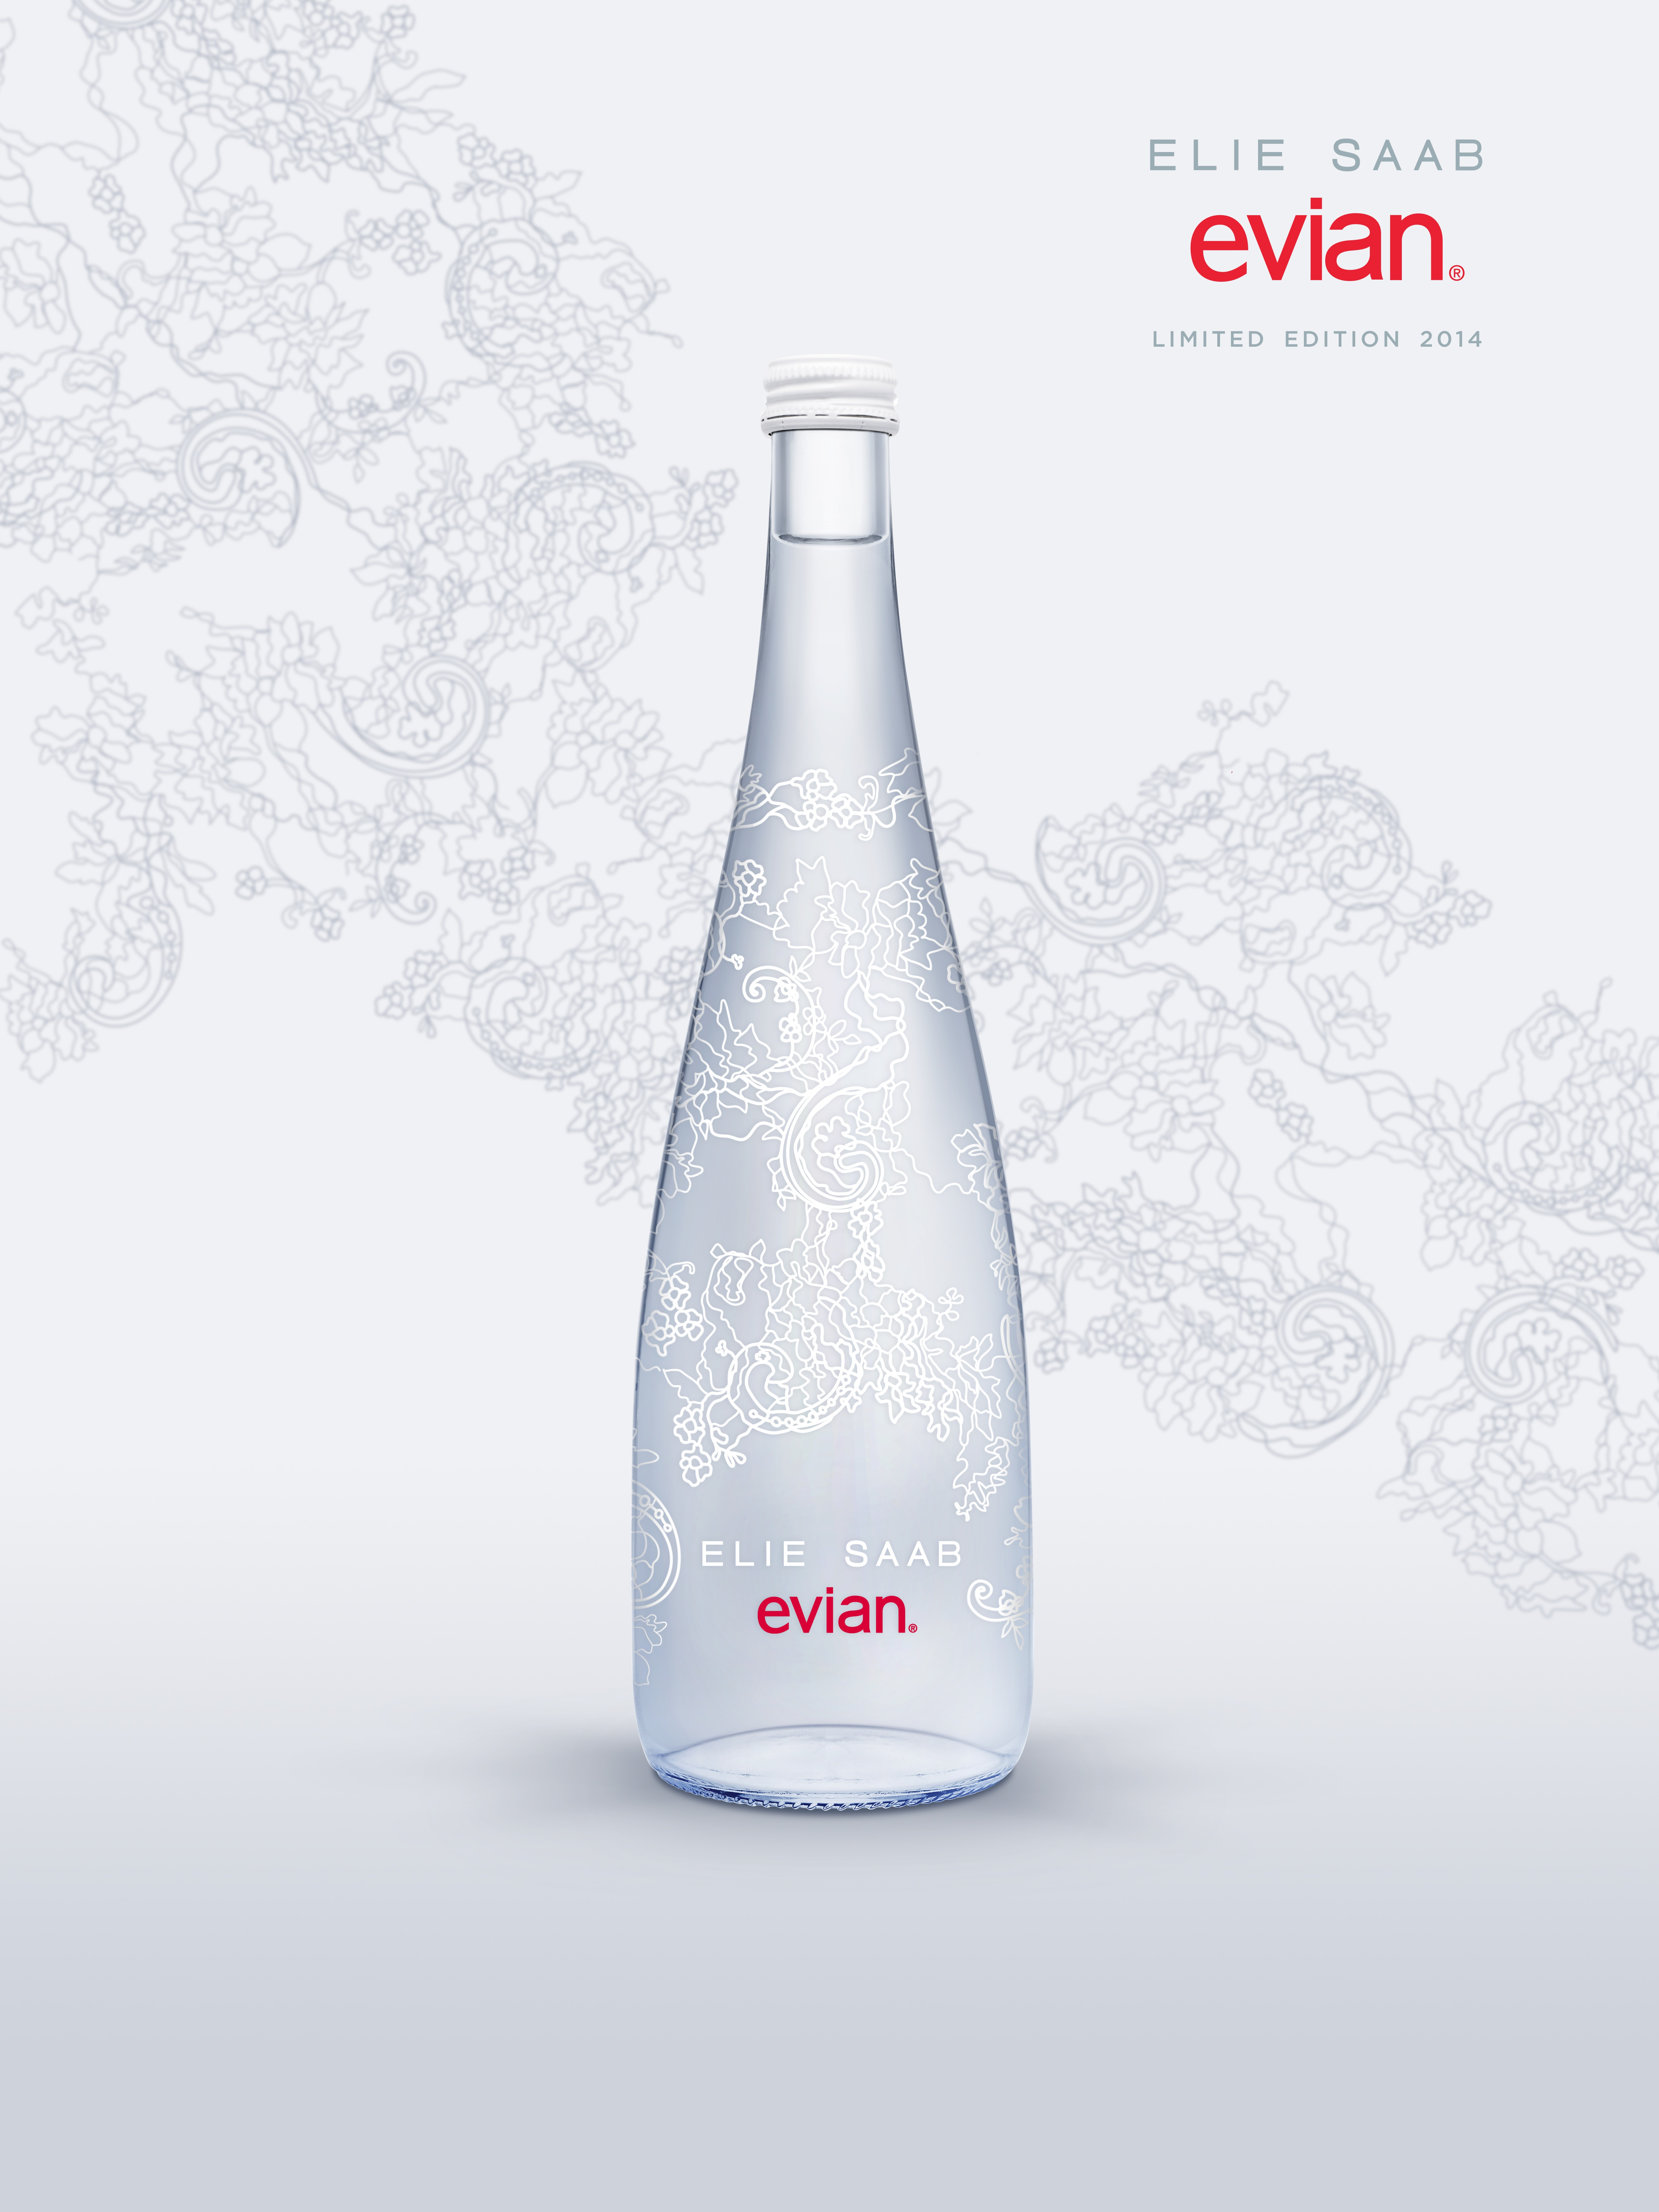 986b3268c7 evian Natural Spring Water has announced its collaboration with fashion  designer, ELIE SAAB, to create a limited edition glass bottle that is a  joint ...